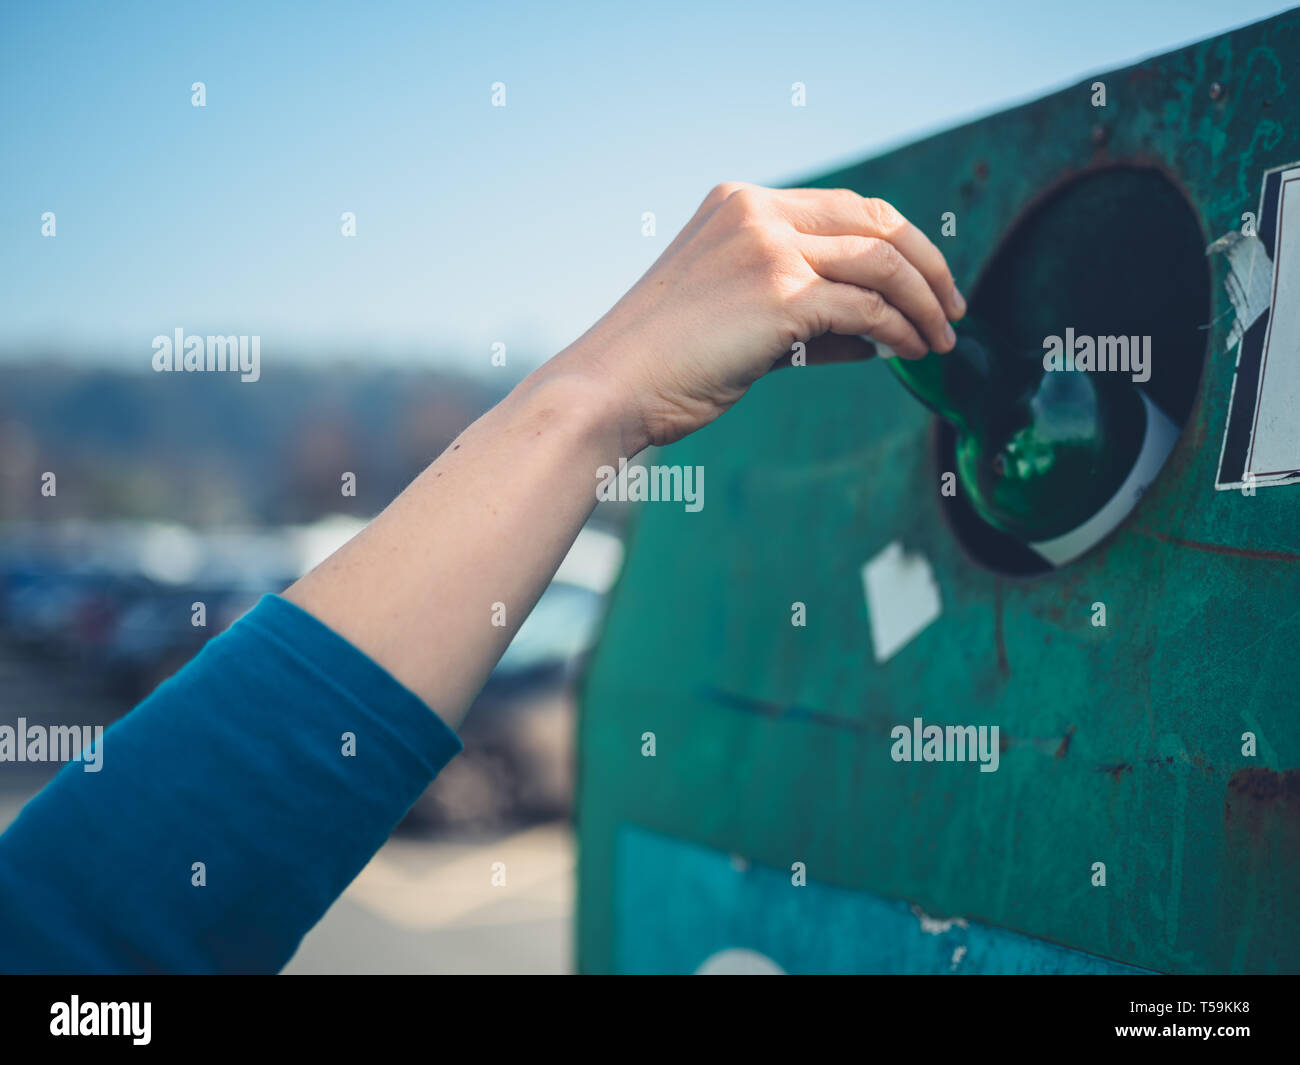 A young woman is recycling a glass bottle at a bottle bank - Stock Image